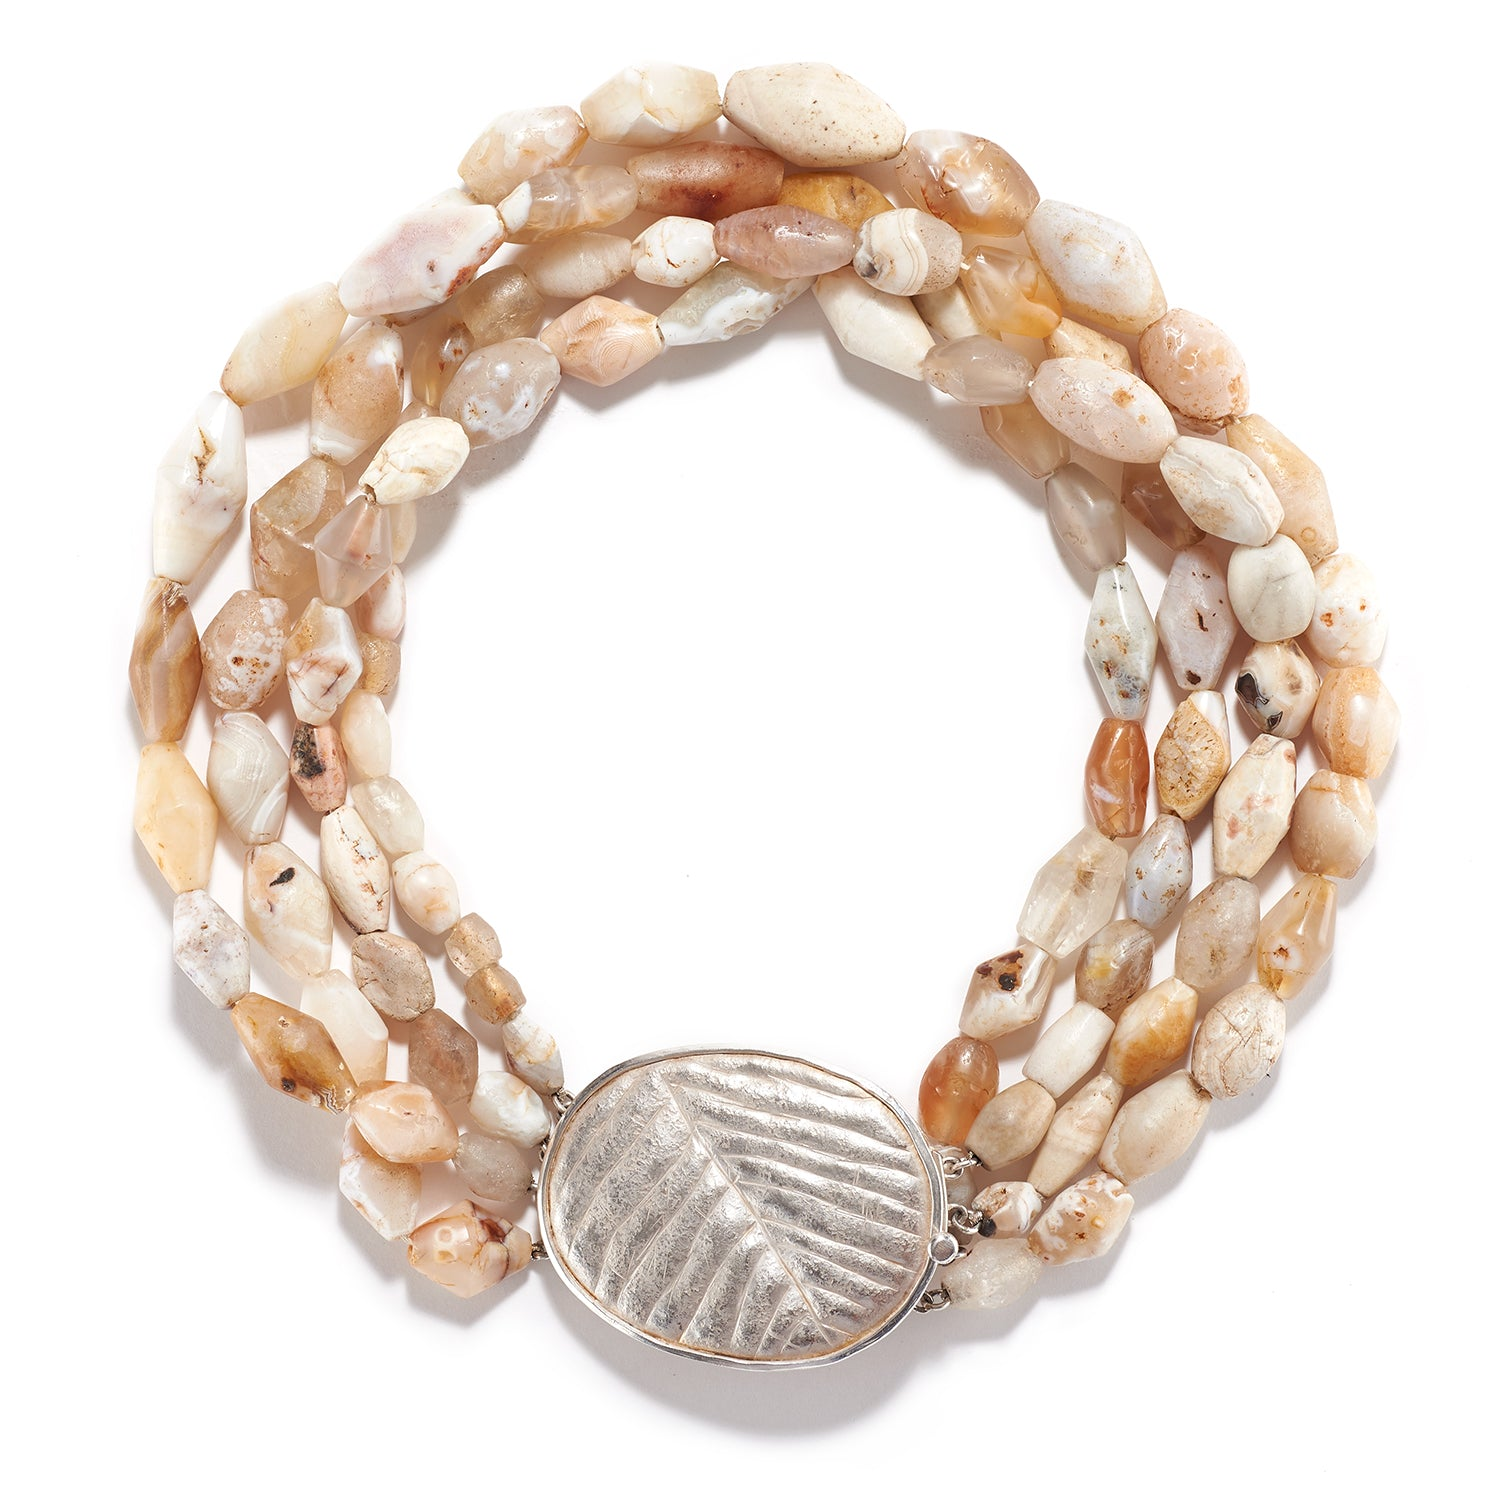 Winter White Agate Necklace